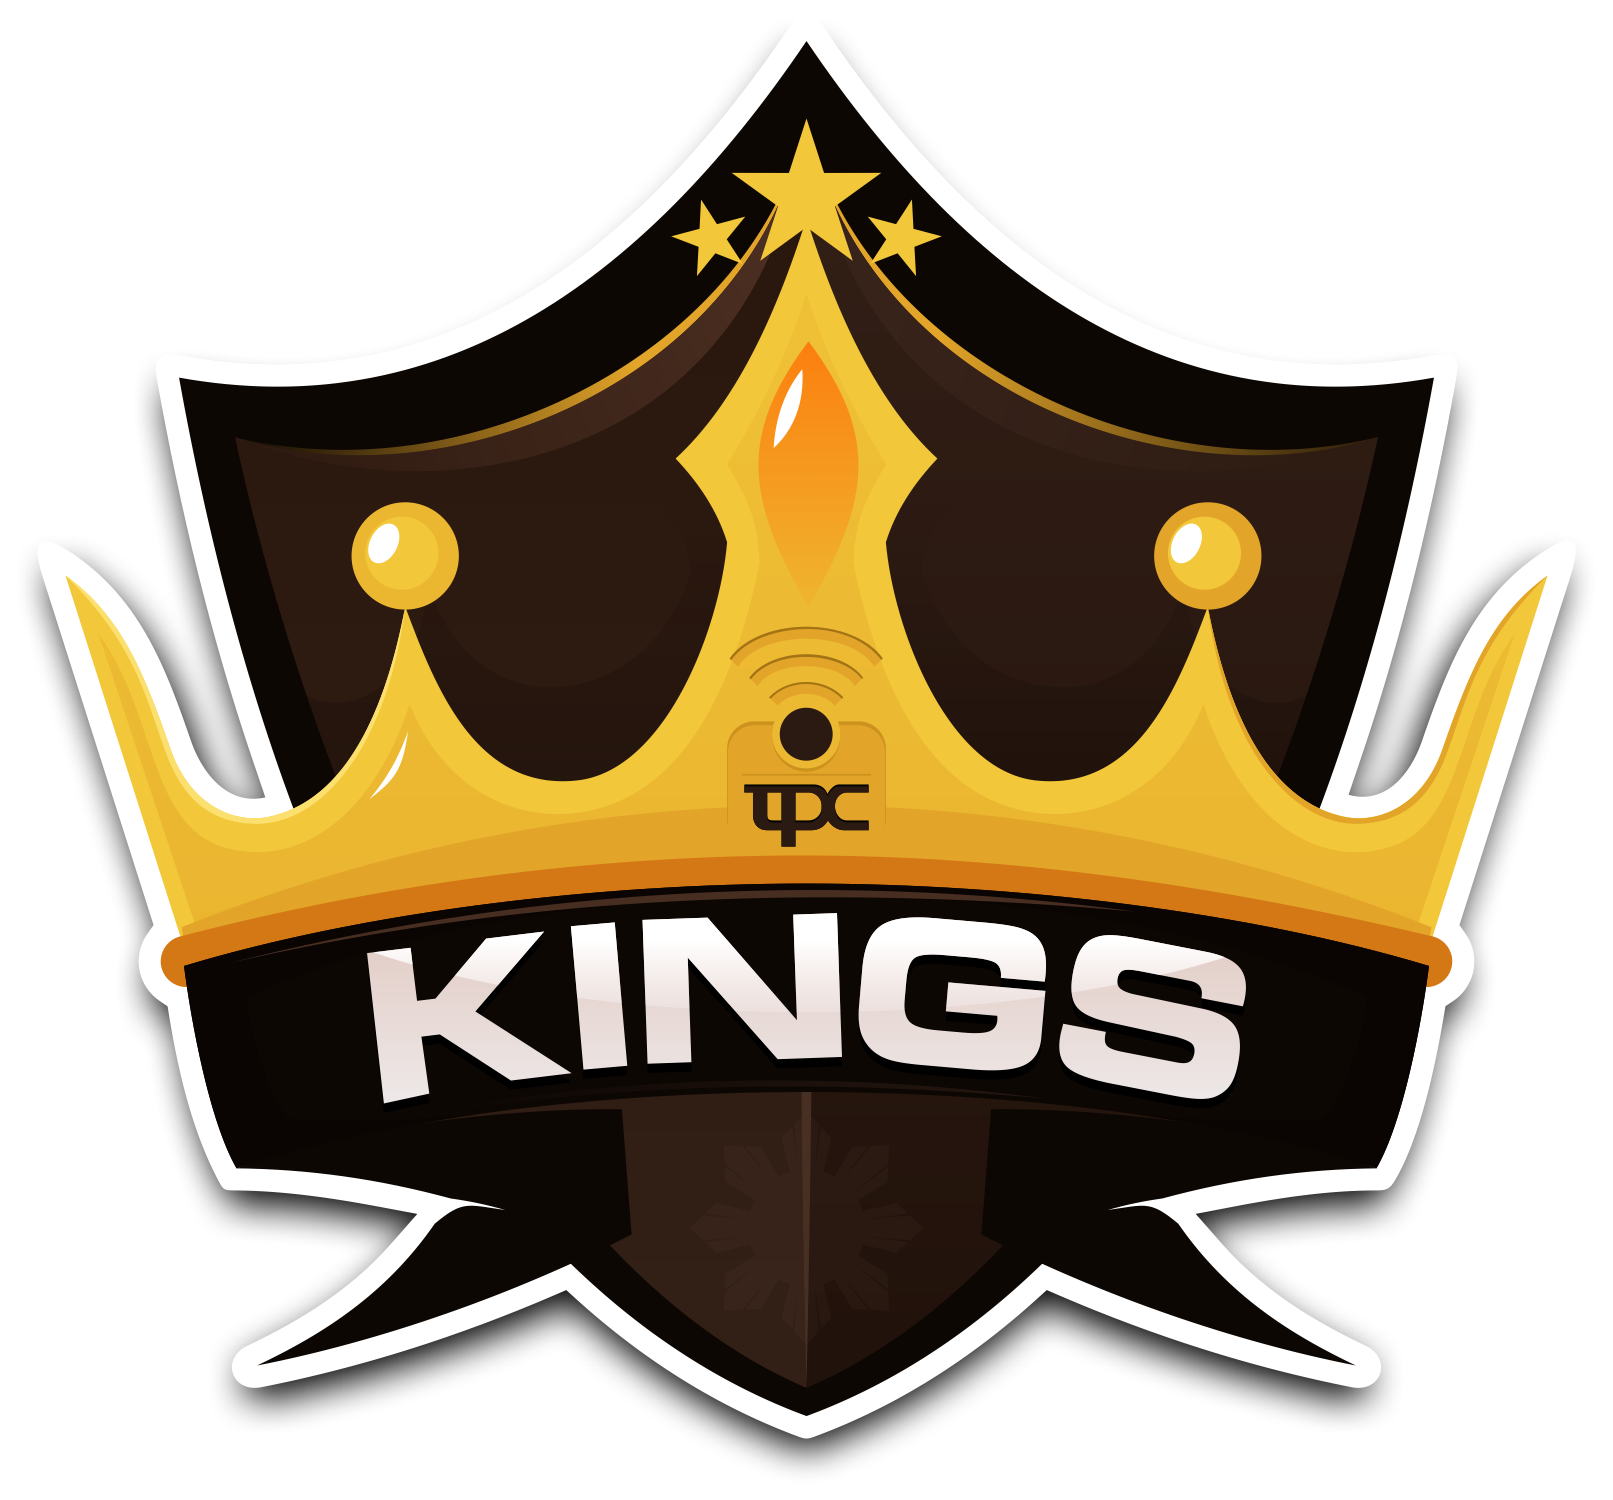 tpc kings logo dark background by shin of fire on deviantart king crown logo images king queen crown logo